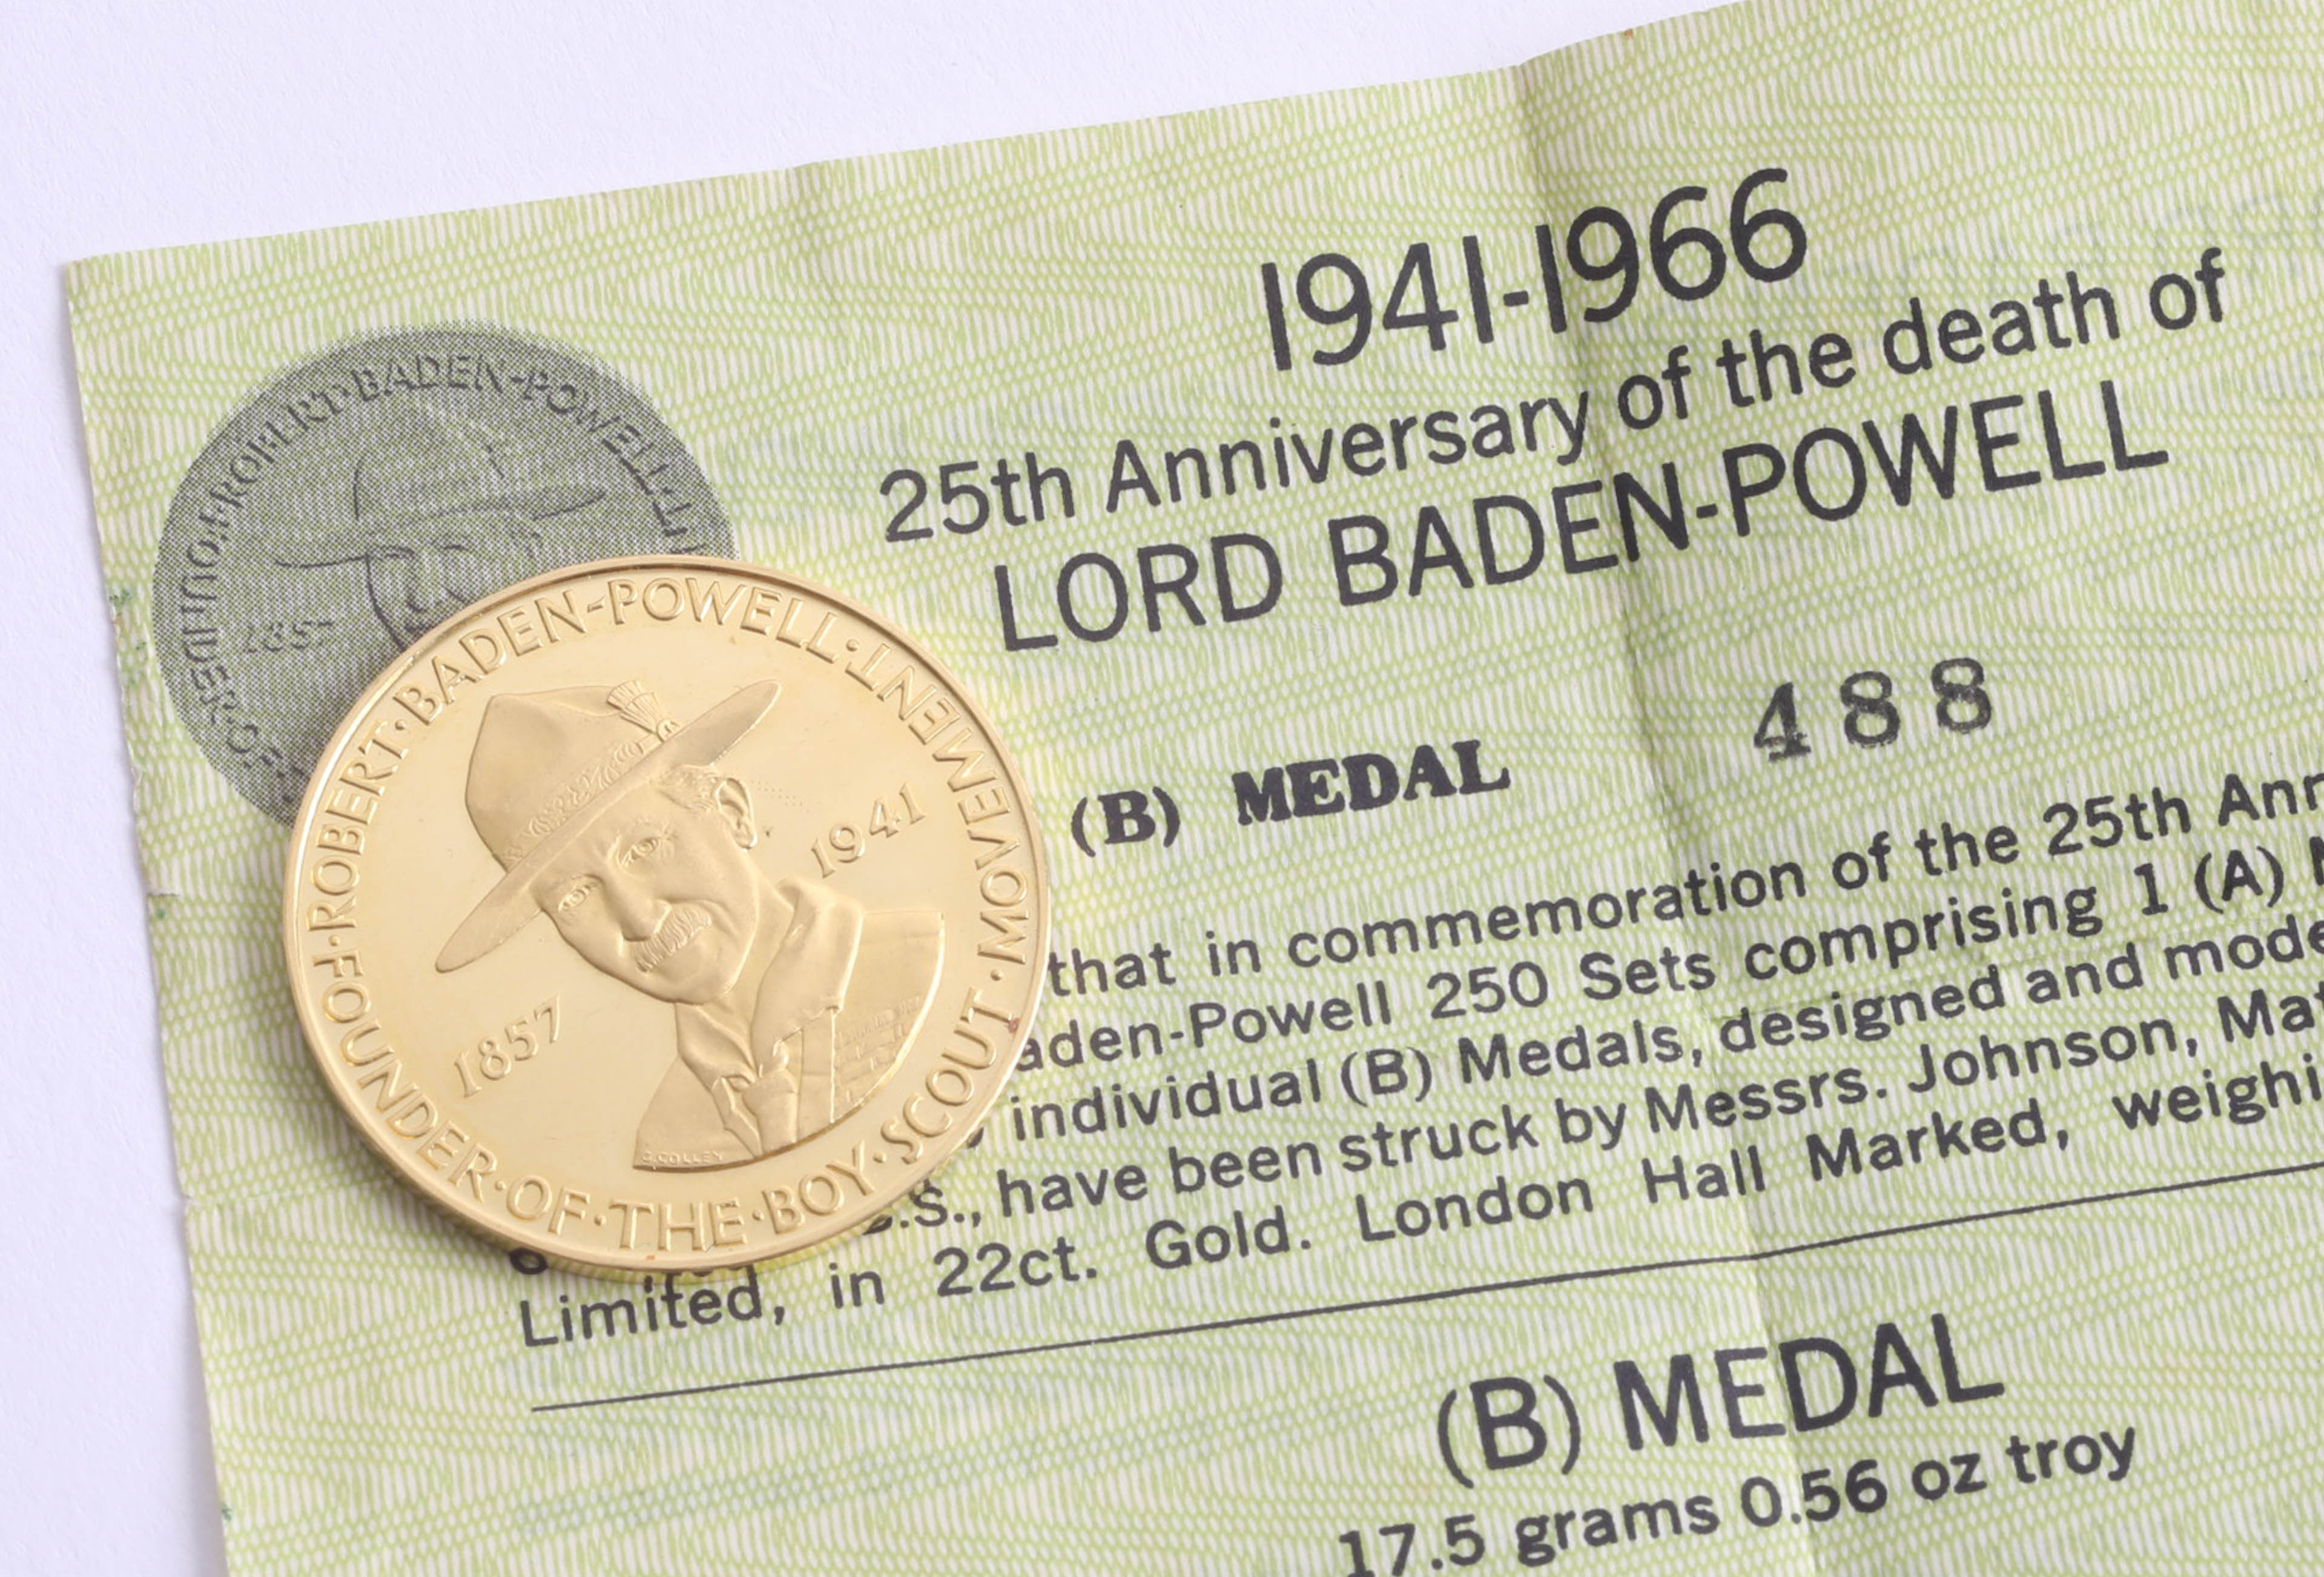 Lot 046 - A gold medal to celebrate 25th anniversary of the death of Lord Baden Powell 17.5g with certificate,